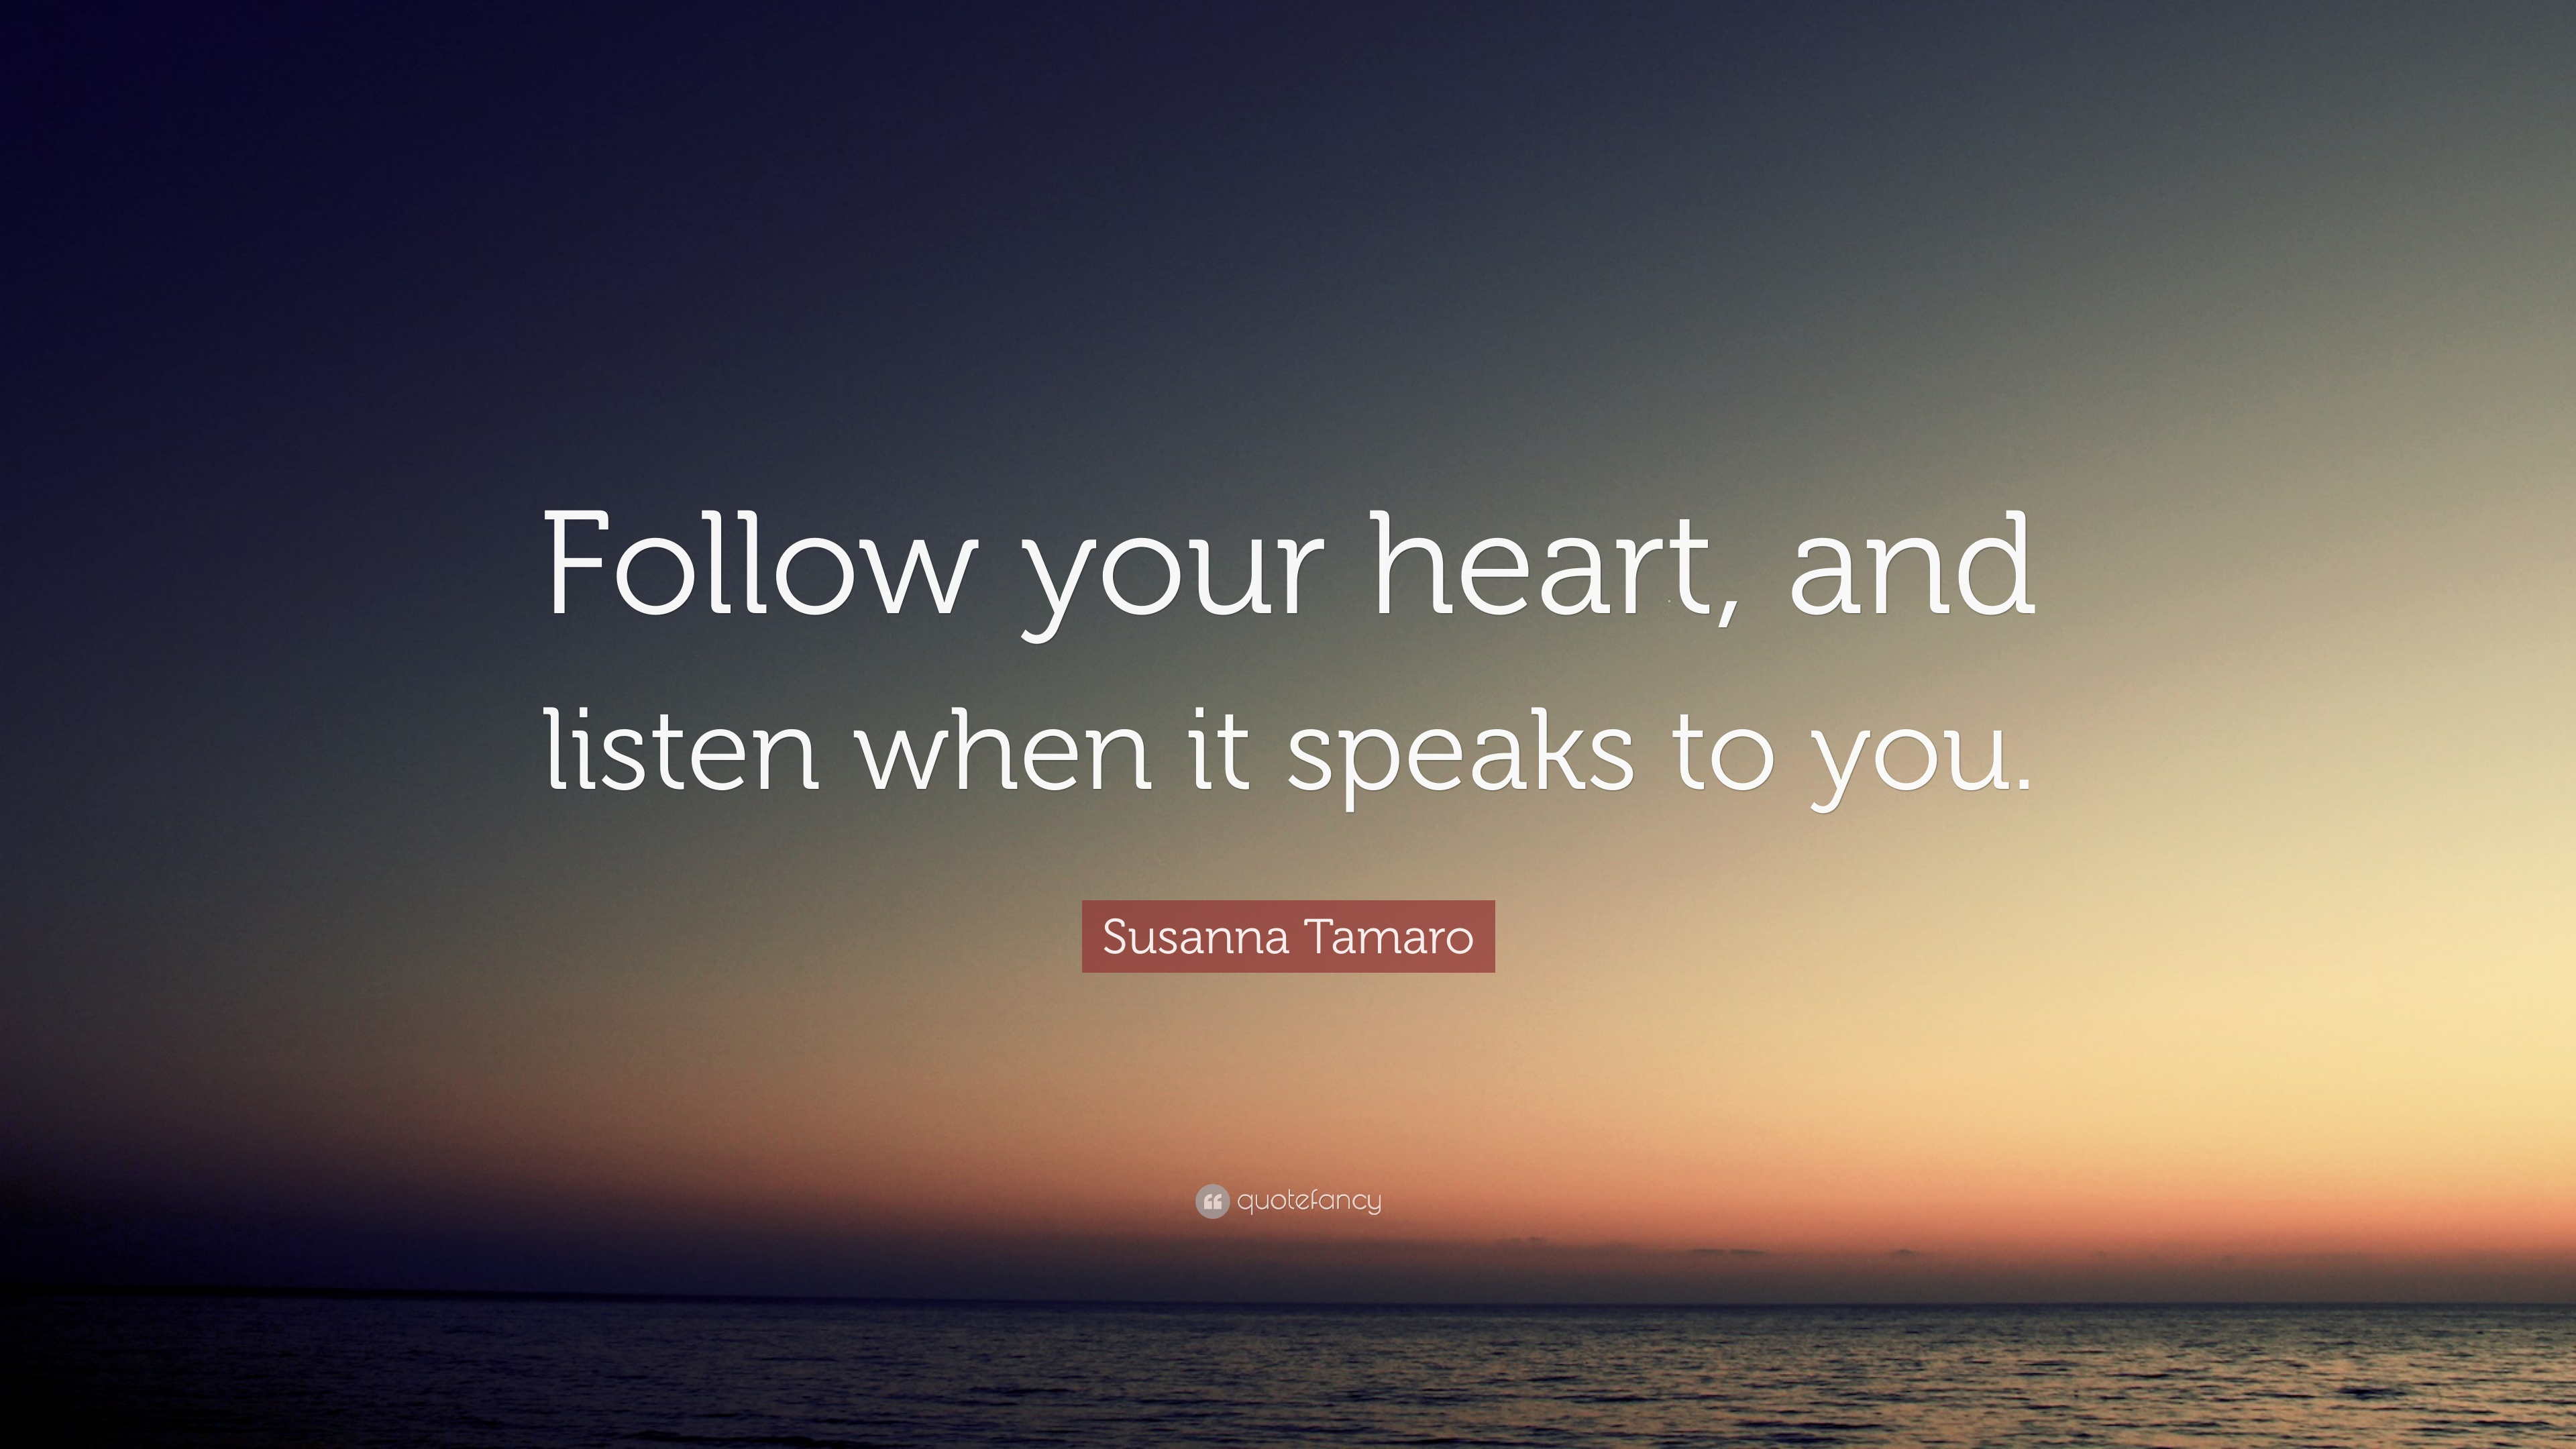 Follow Your Heart Susanna Tamaro Quote Follow Your Heart And Listen When It